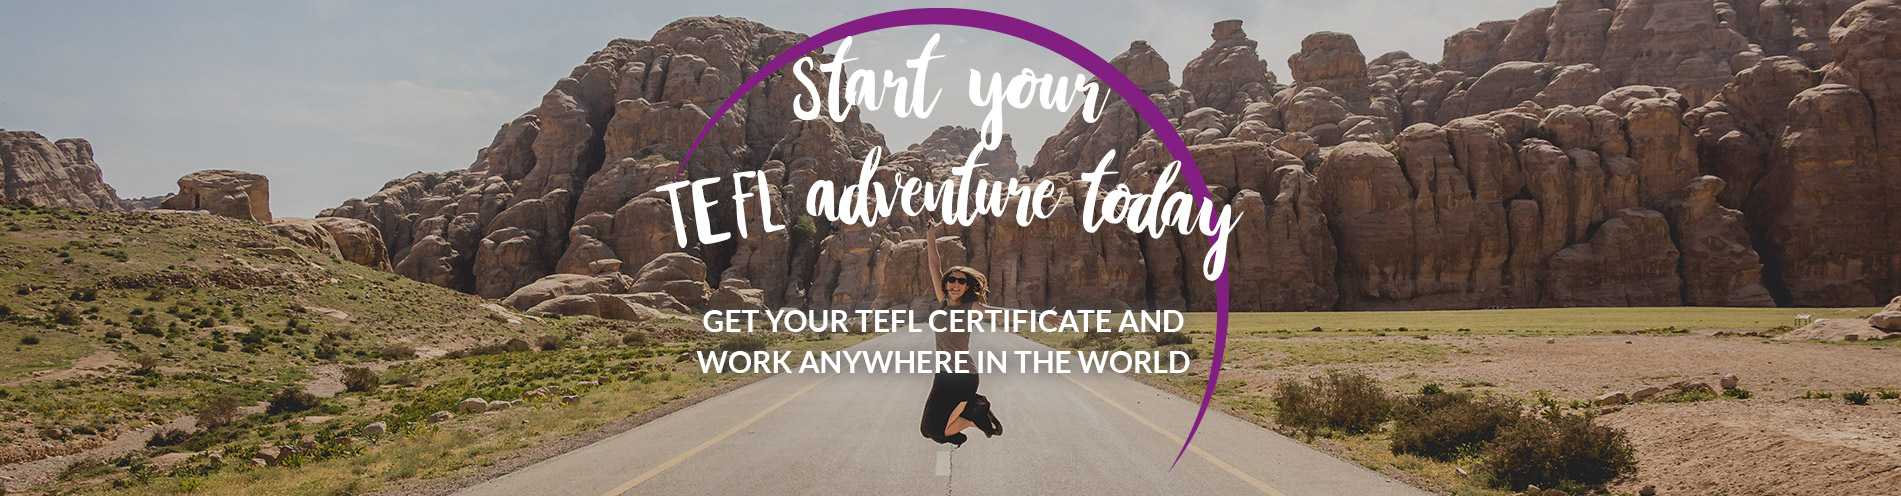 Start your TEFL adventure today